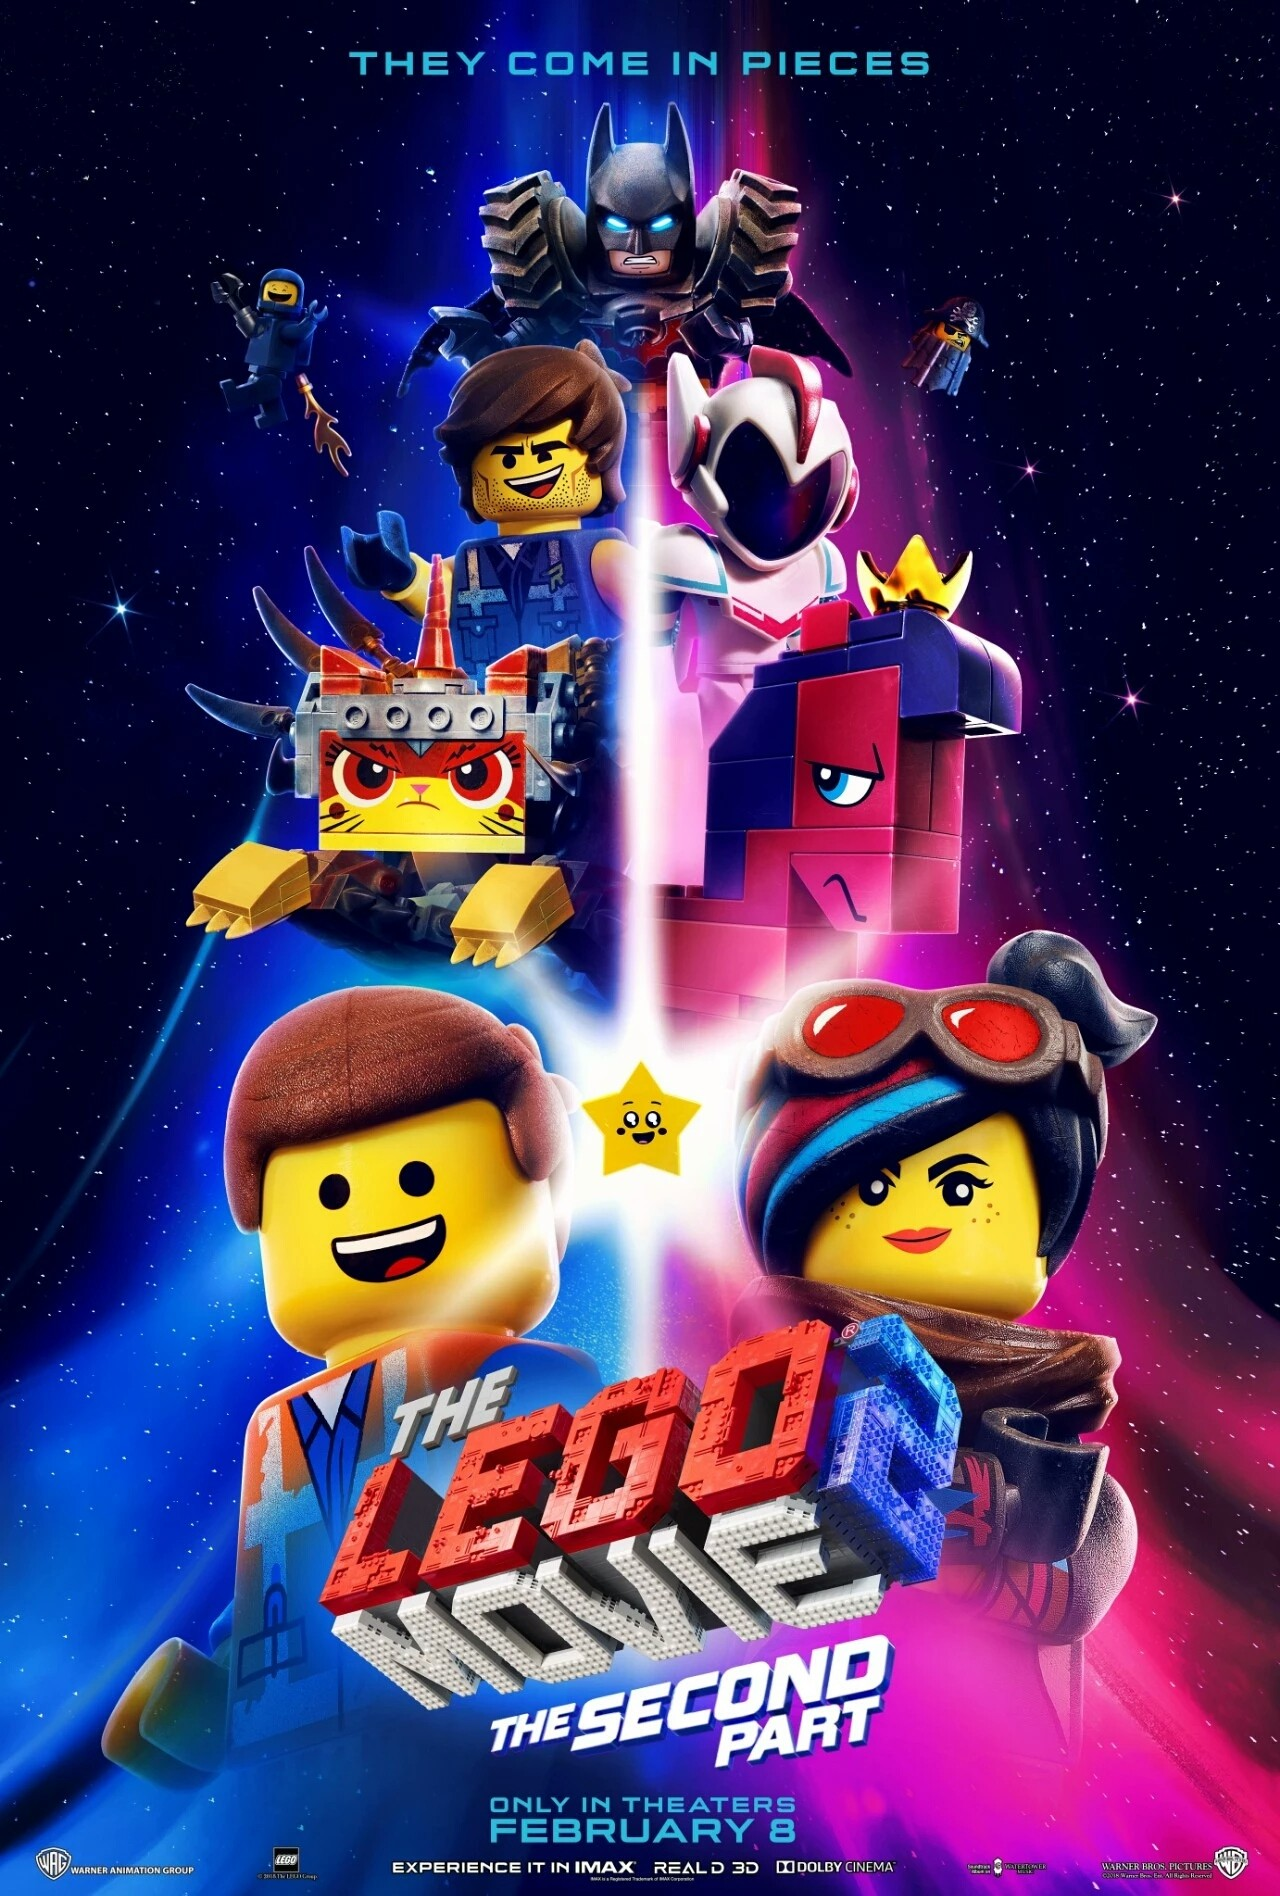 The Lego Movie 2: The Second Part 乐高大电影2